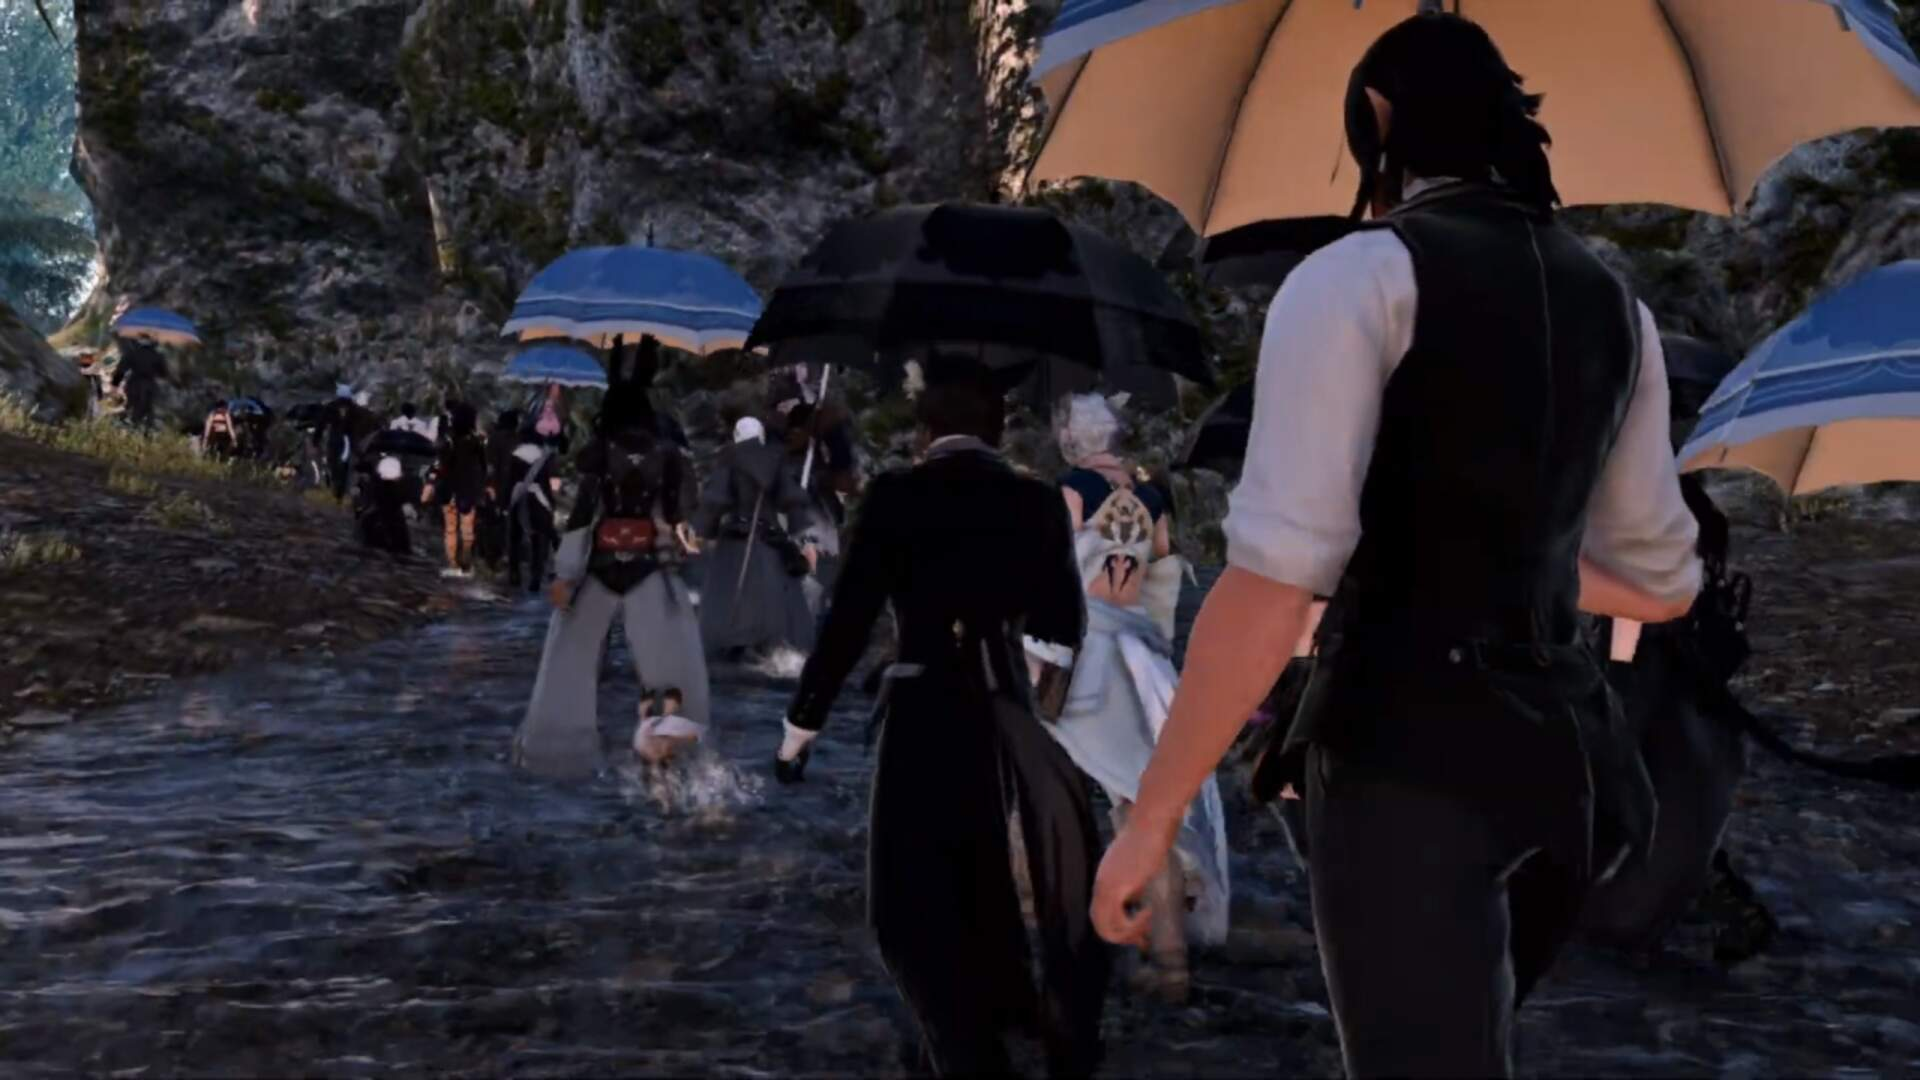 Final Fantasy 14 Players Host Memorial Procession For Player Who Died of COVID-19